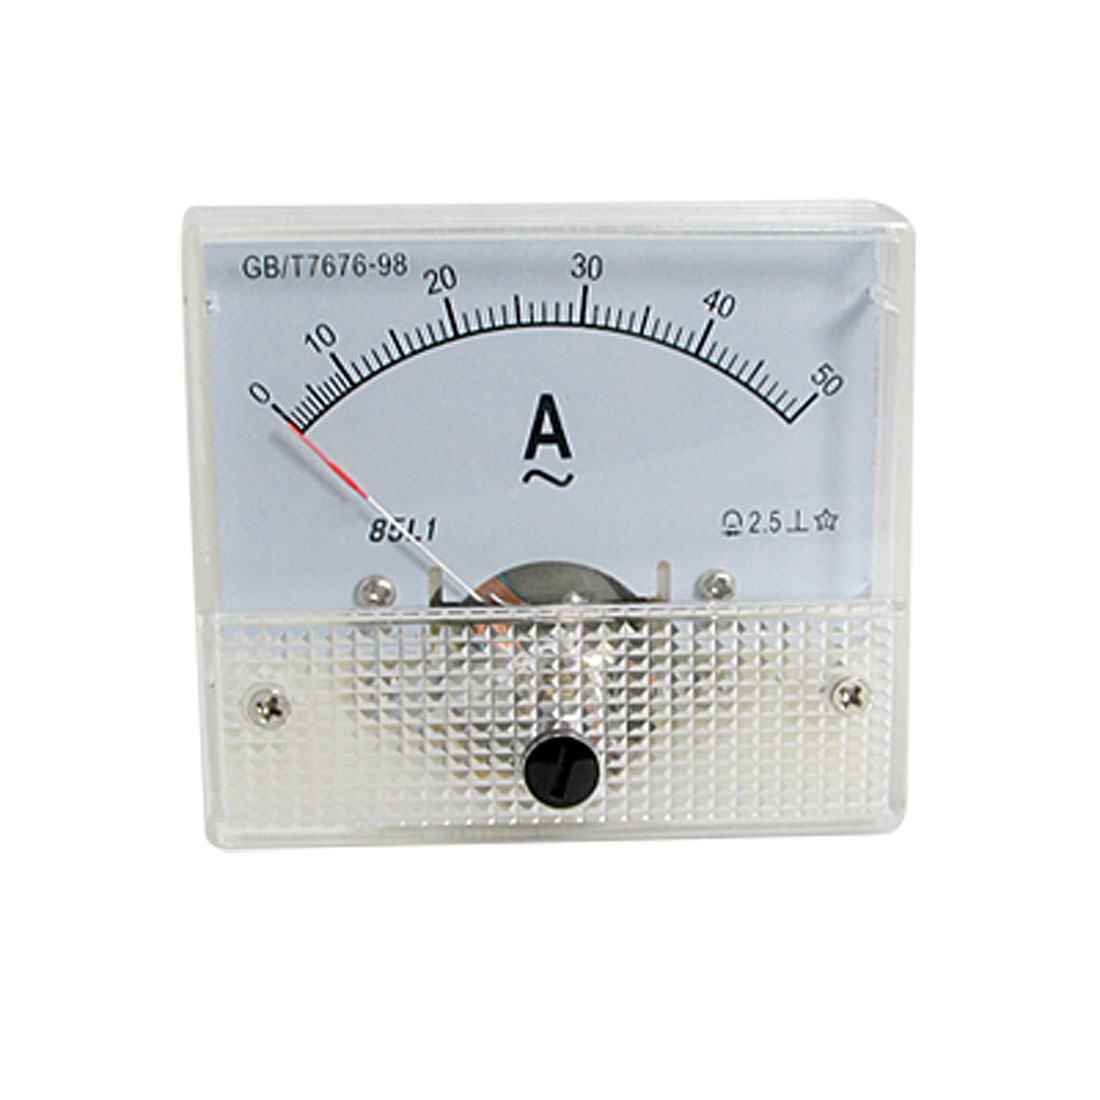 Class 2.5 Accuracy AC 0-50A Analog Panel Ammeter 85L1